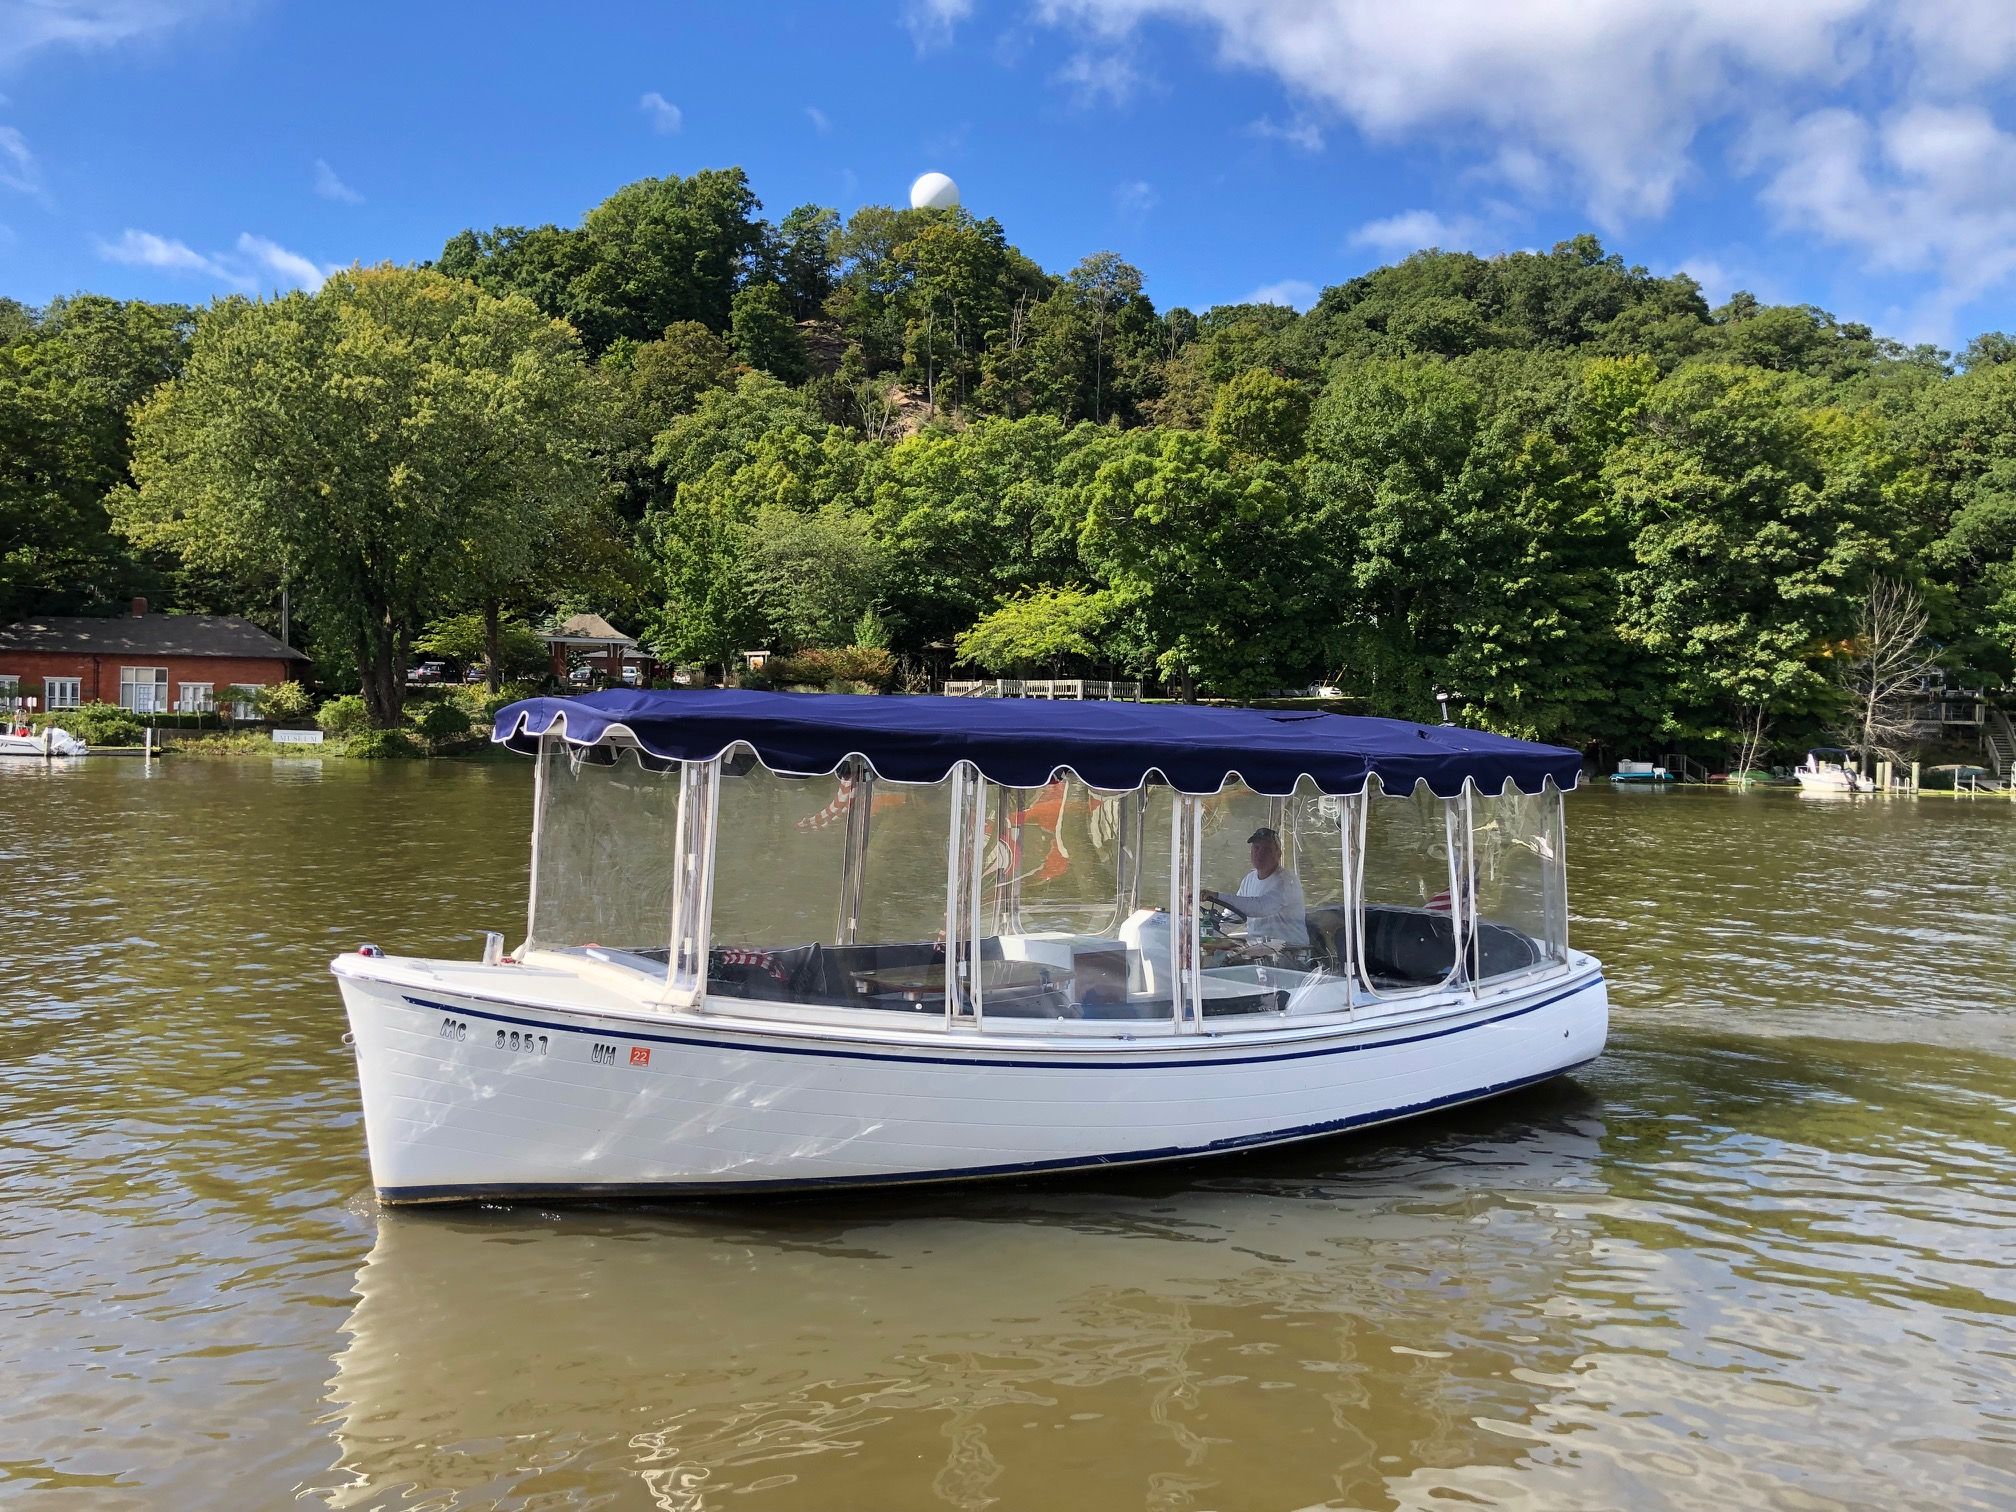 Duffy Boat on the Kalamazoo River in Saugatuck